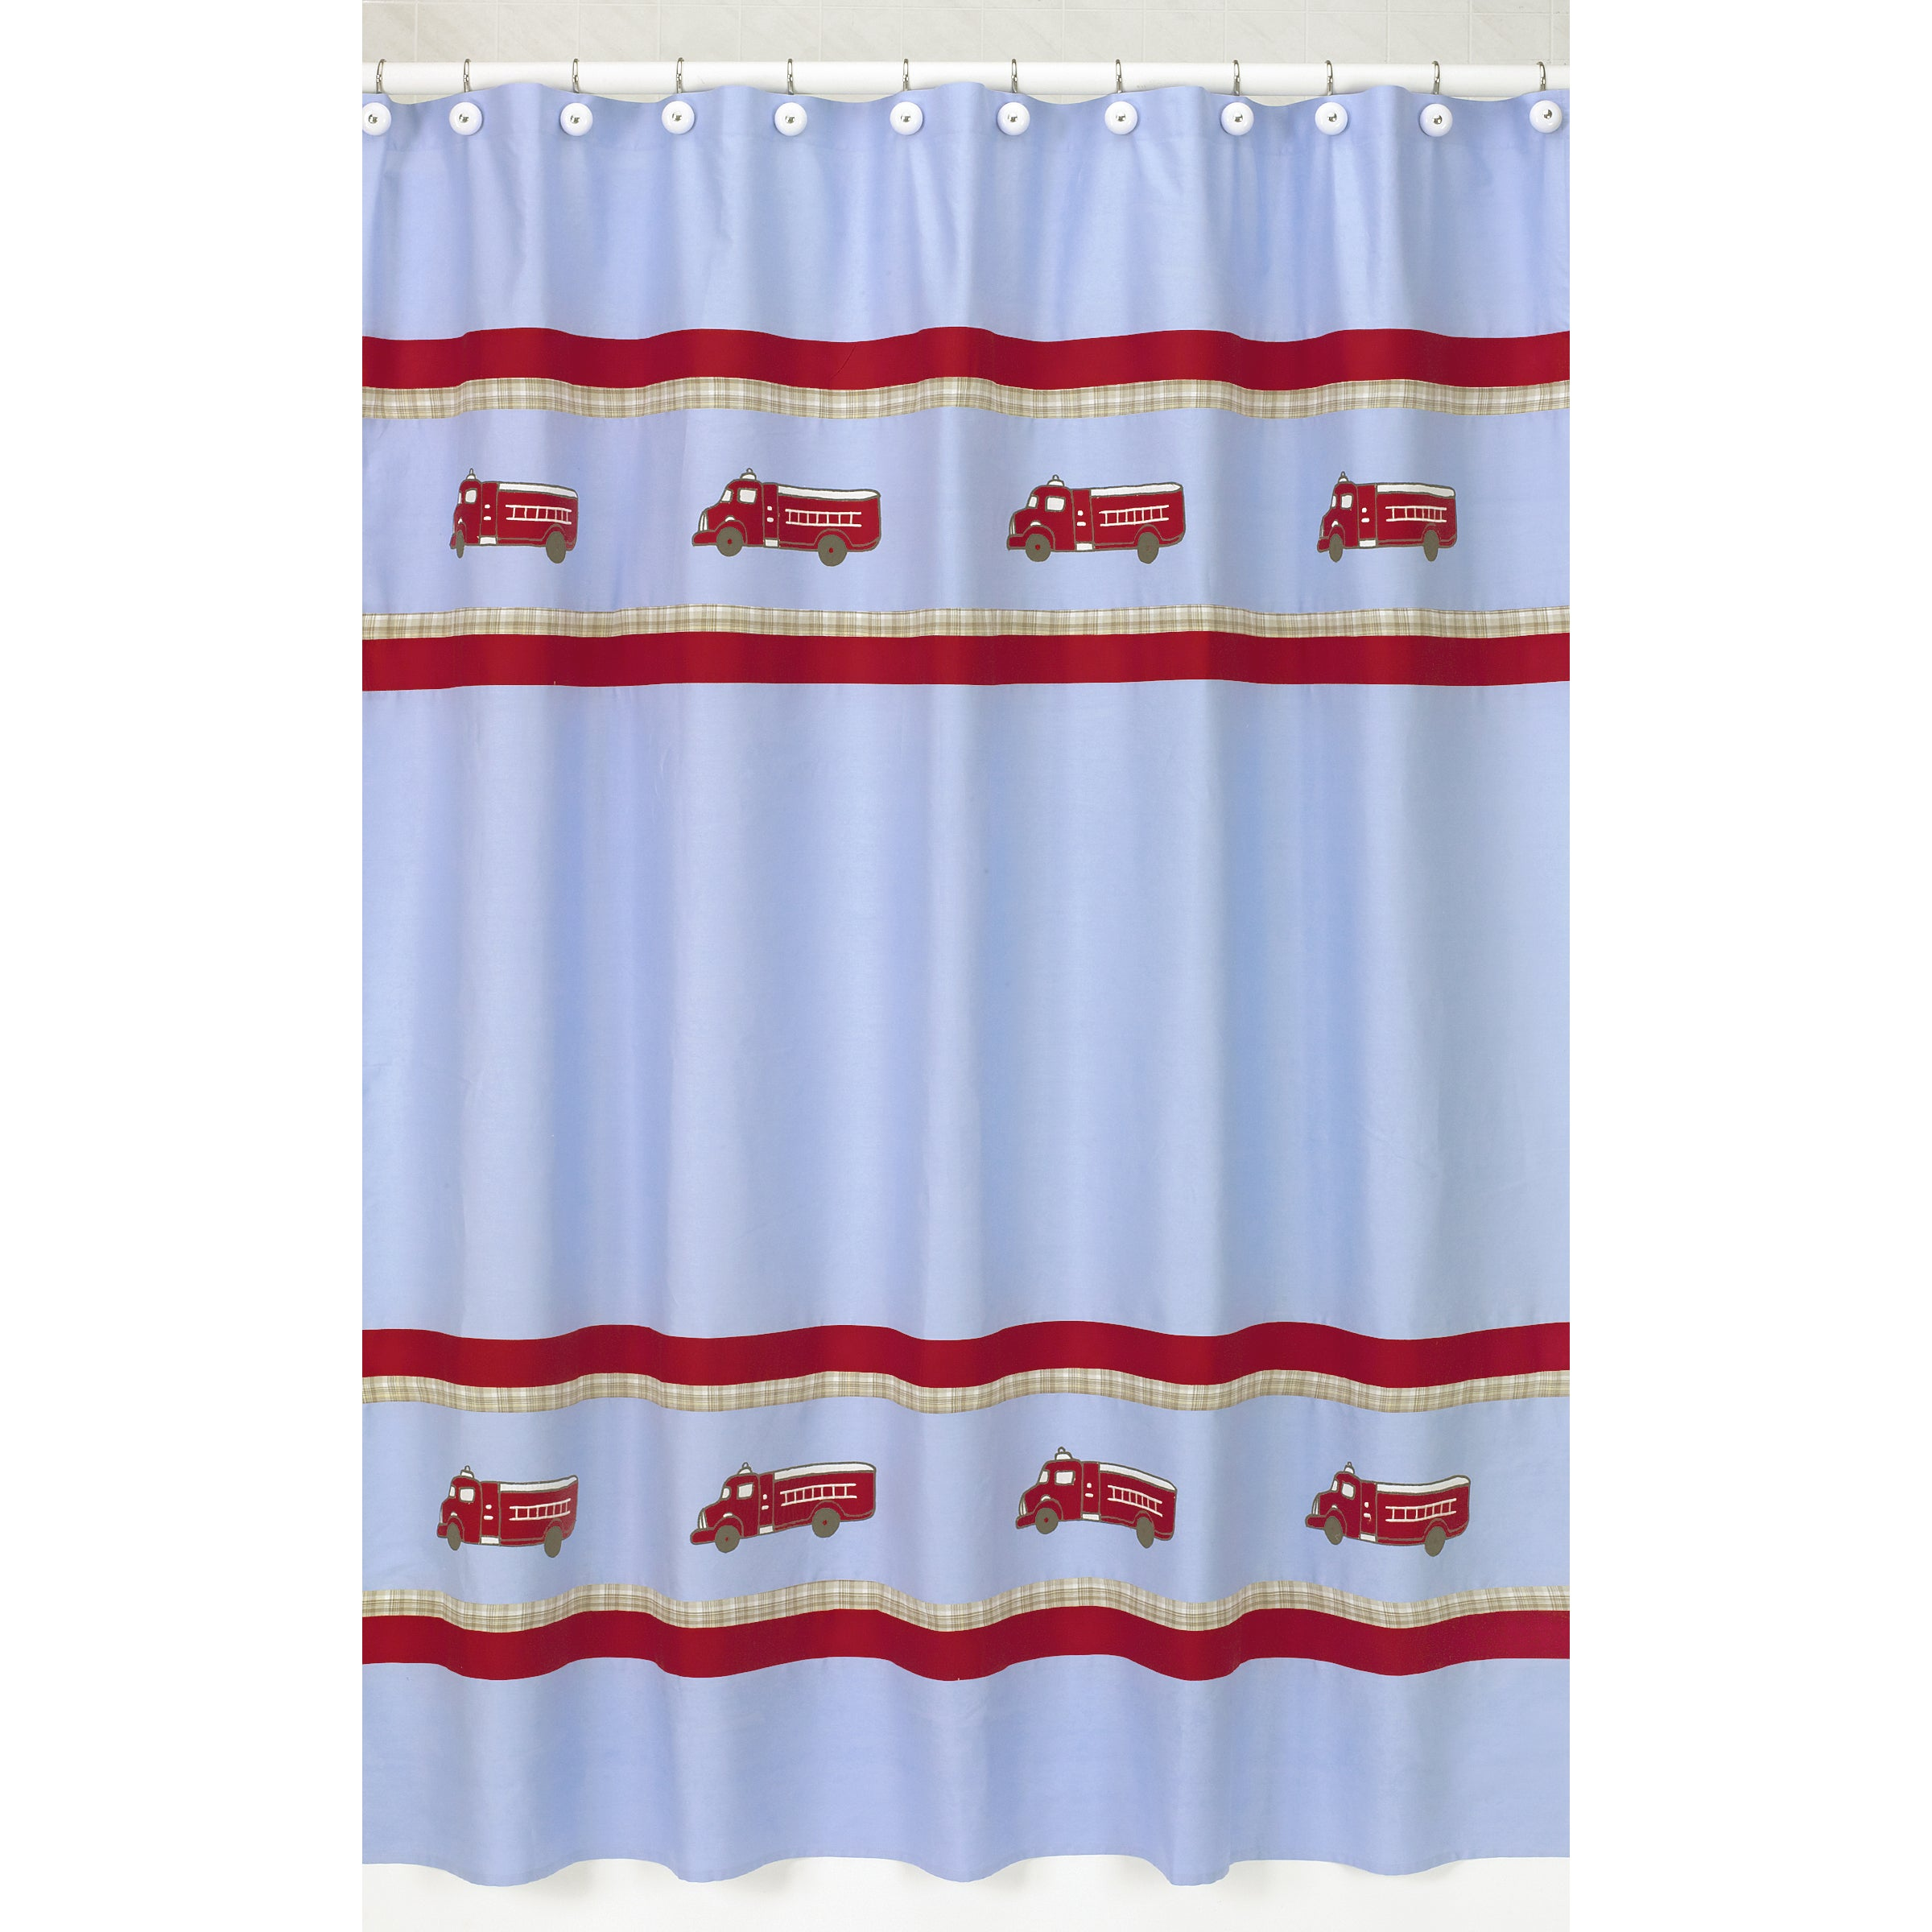 Sweet Jojo Designs Frankie's Firetruck Kids Shower Curtain at Sears.com